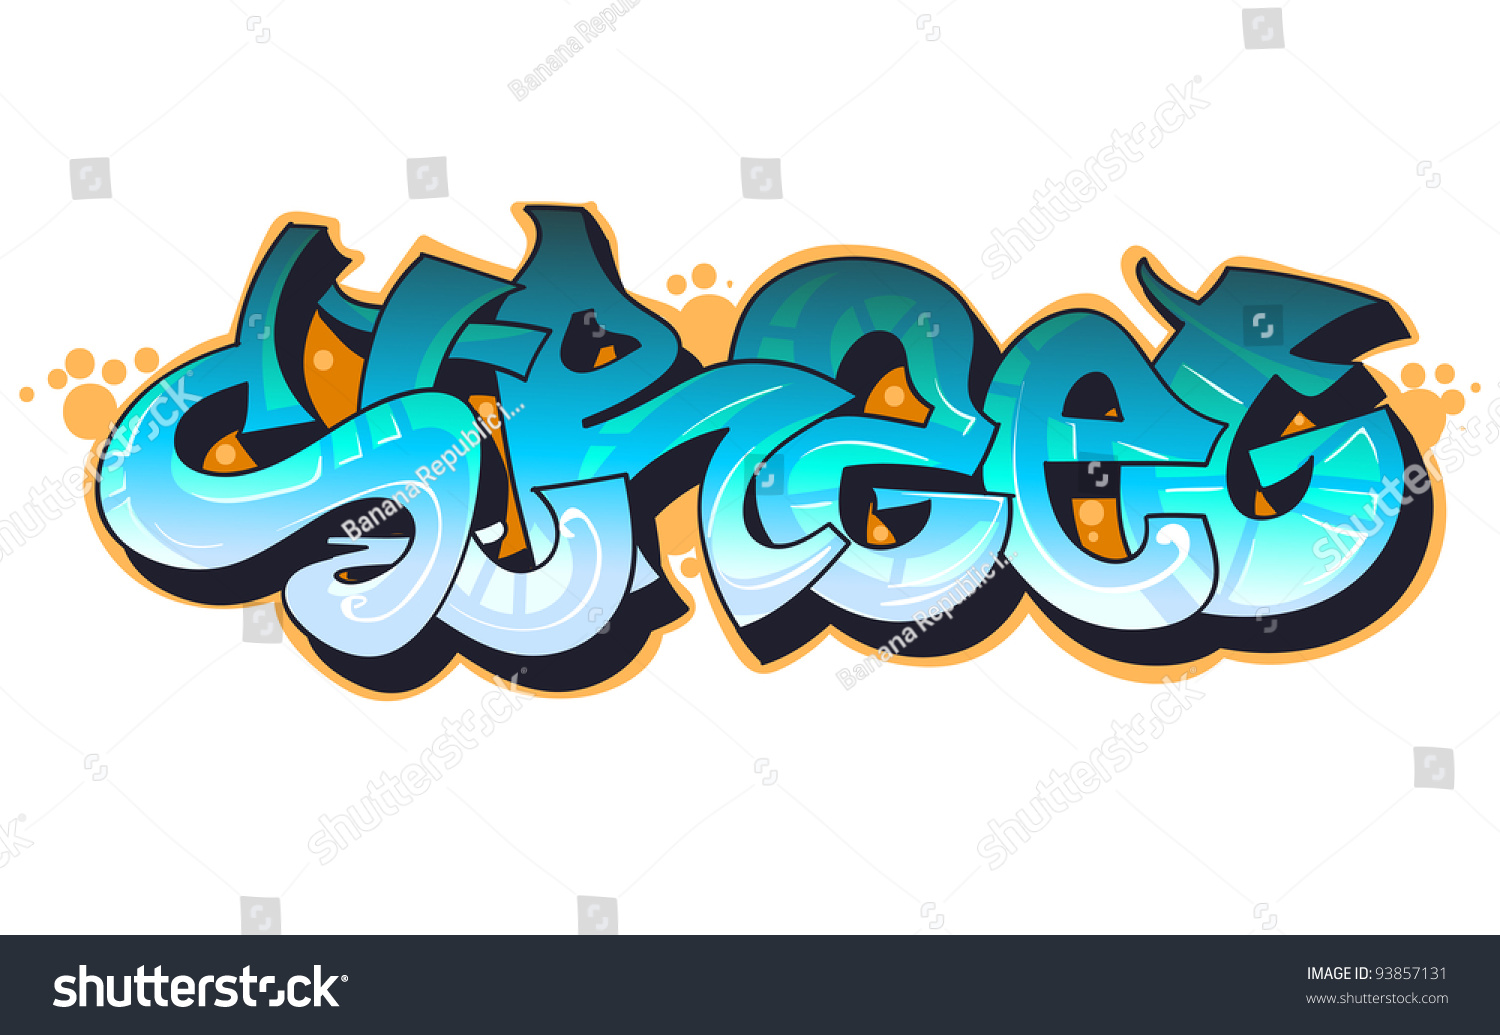 Graffiti Urban Art Stock Vector Illustration 93857131